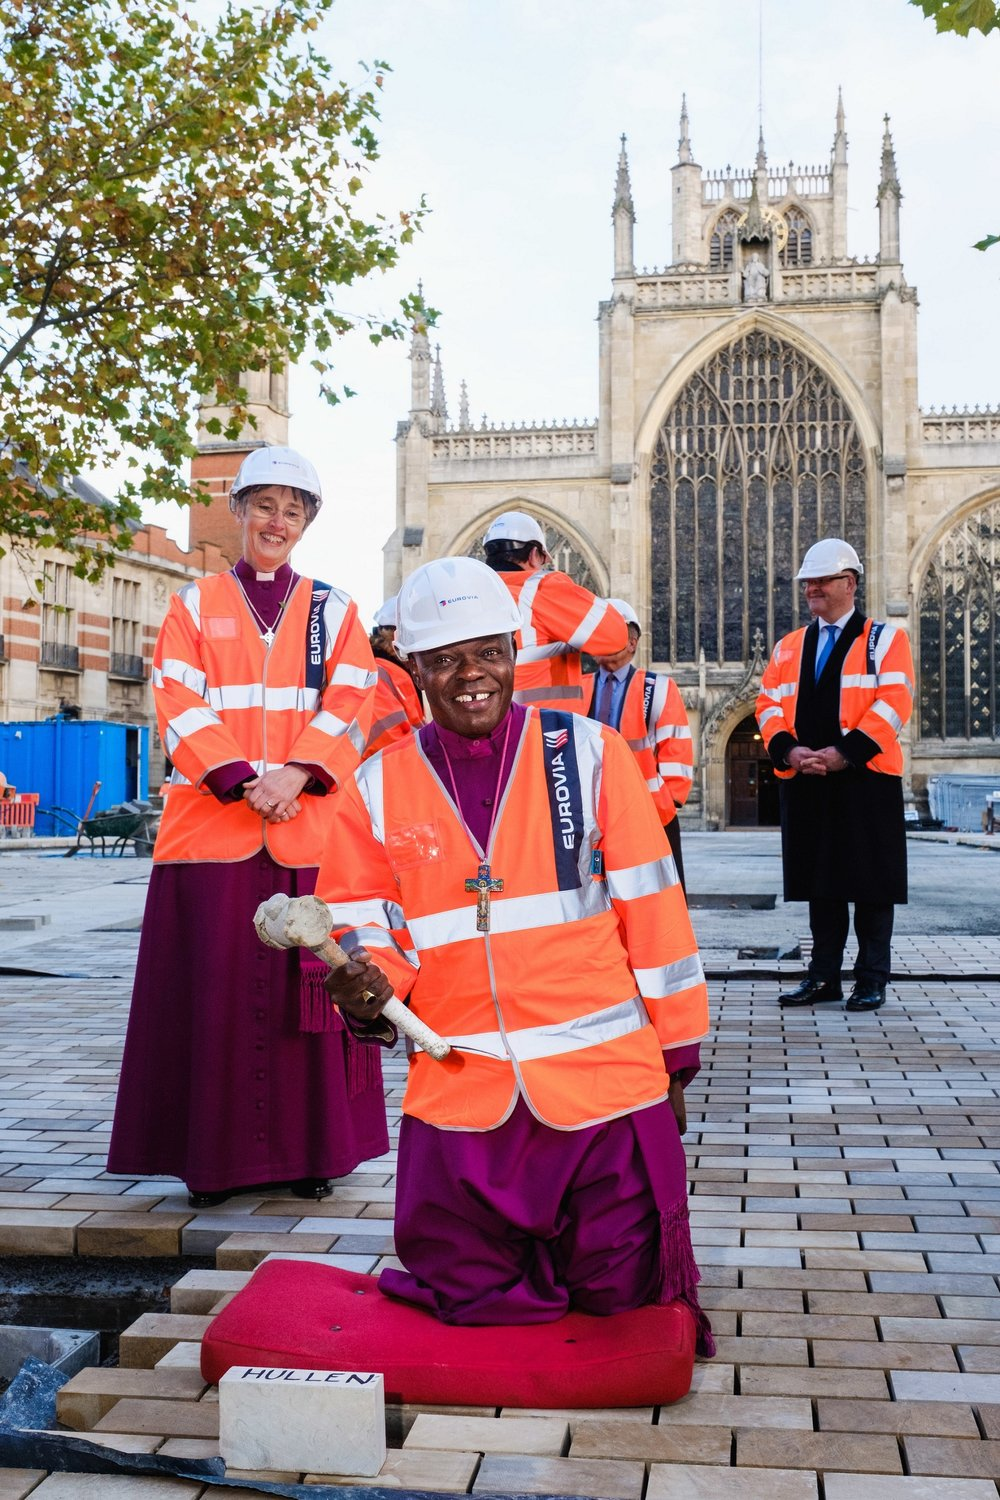 The Archbishop of York wields a mallet as he prepares to hammer in a paving stone as part of the redevelopment of Trinity Square, in the shadow of Hull's historic Holy Trinity Church.